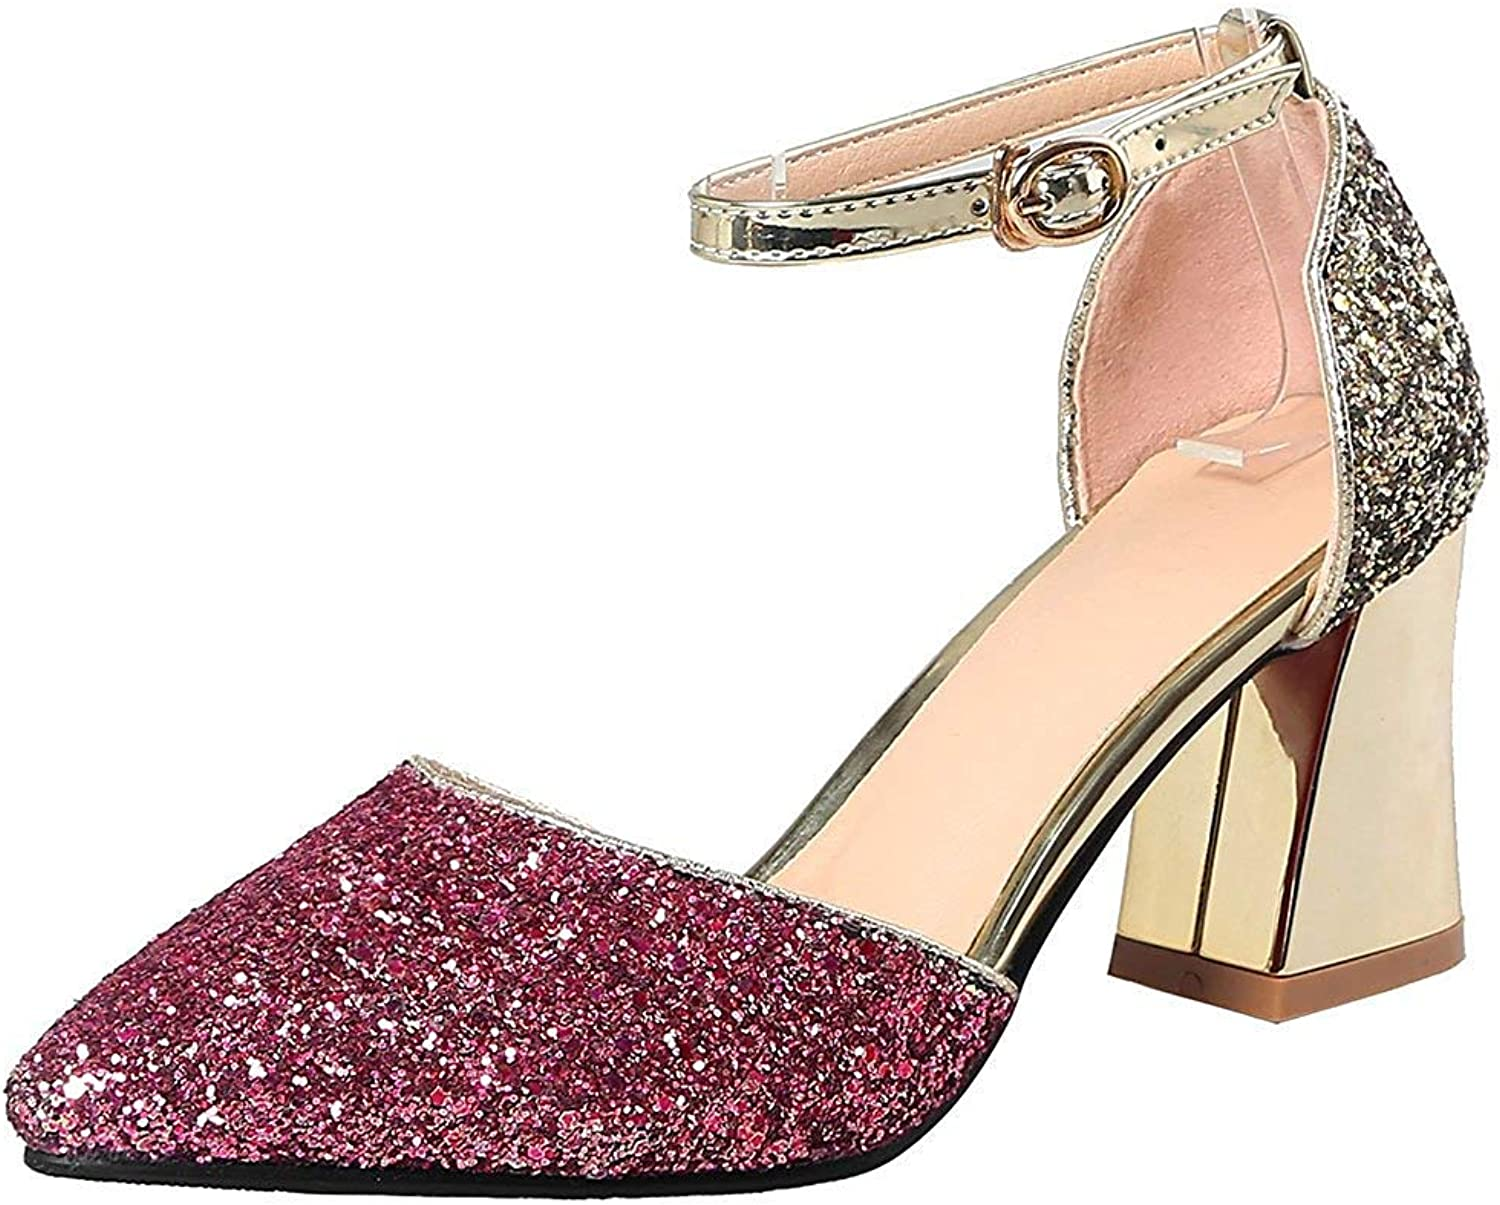 Lelehwhge Women's Fashion Sequins Ankle Strap Sandals - Glitter Pointed Toe Cut Out - Buckle Block Medium Heels Bridal shoes Silver 4.5 M US